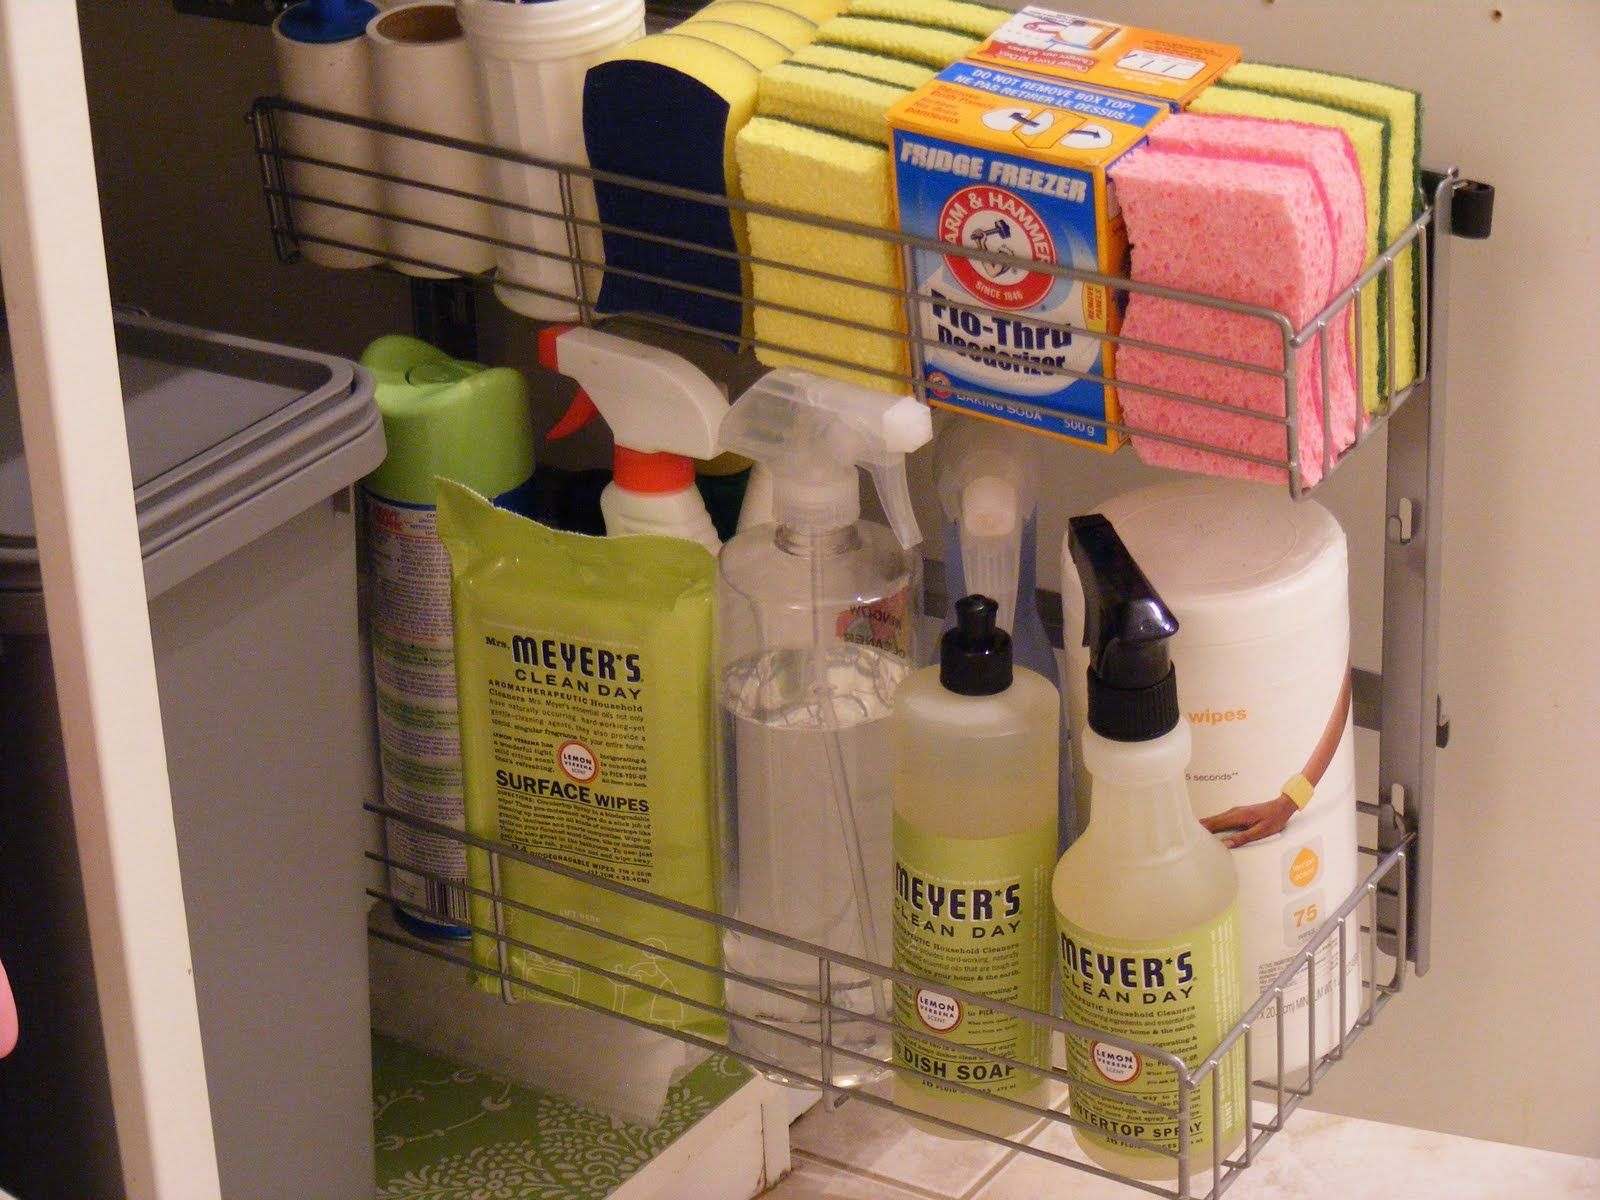 Kitchen Organization: Wire Shelving Under Sink Unit From IKEAu0027s Rationell  Line {Mini Manor Blog}